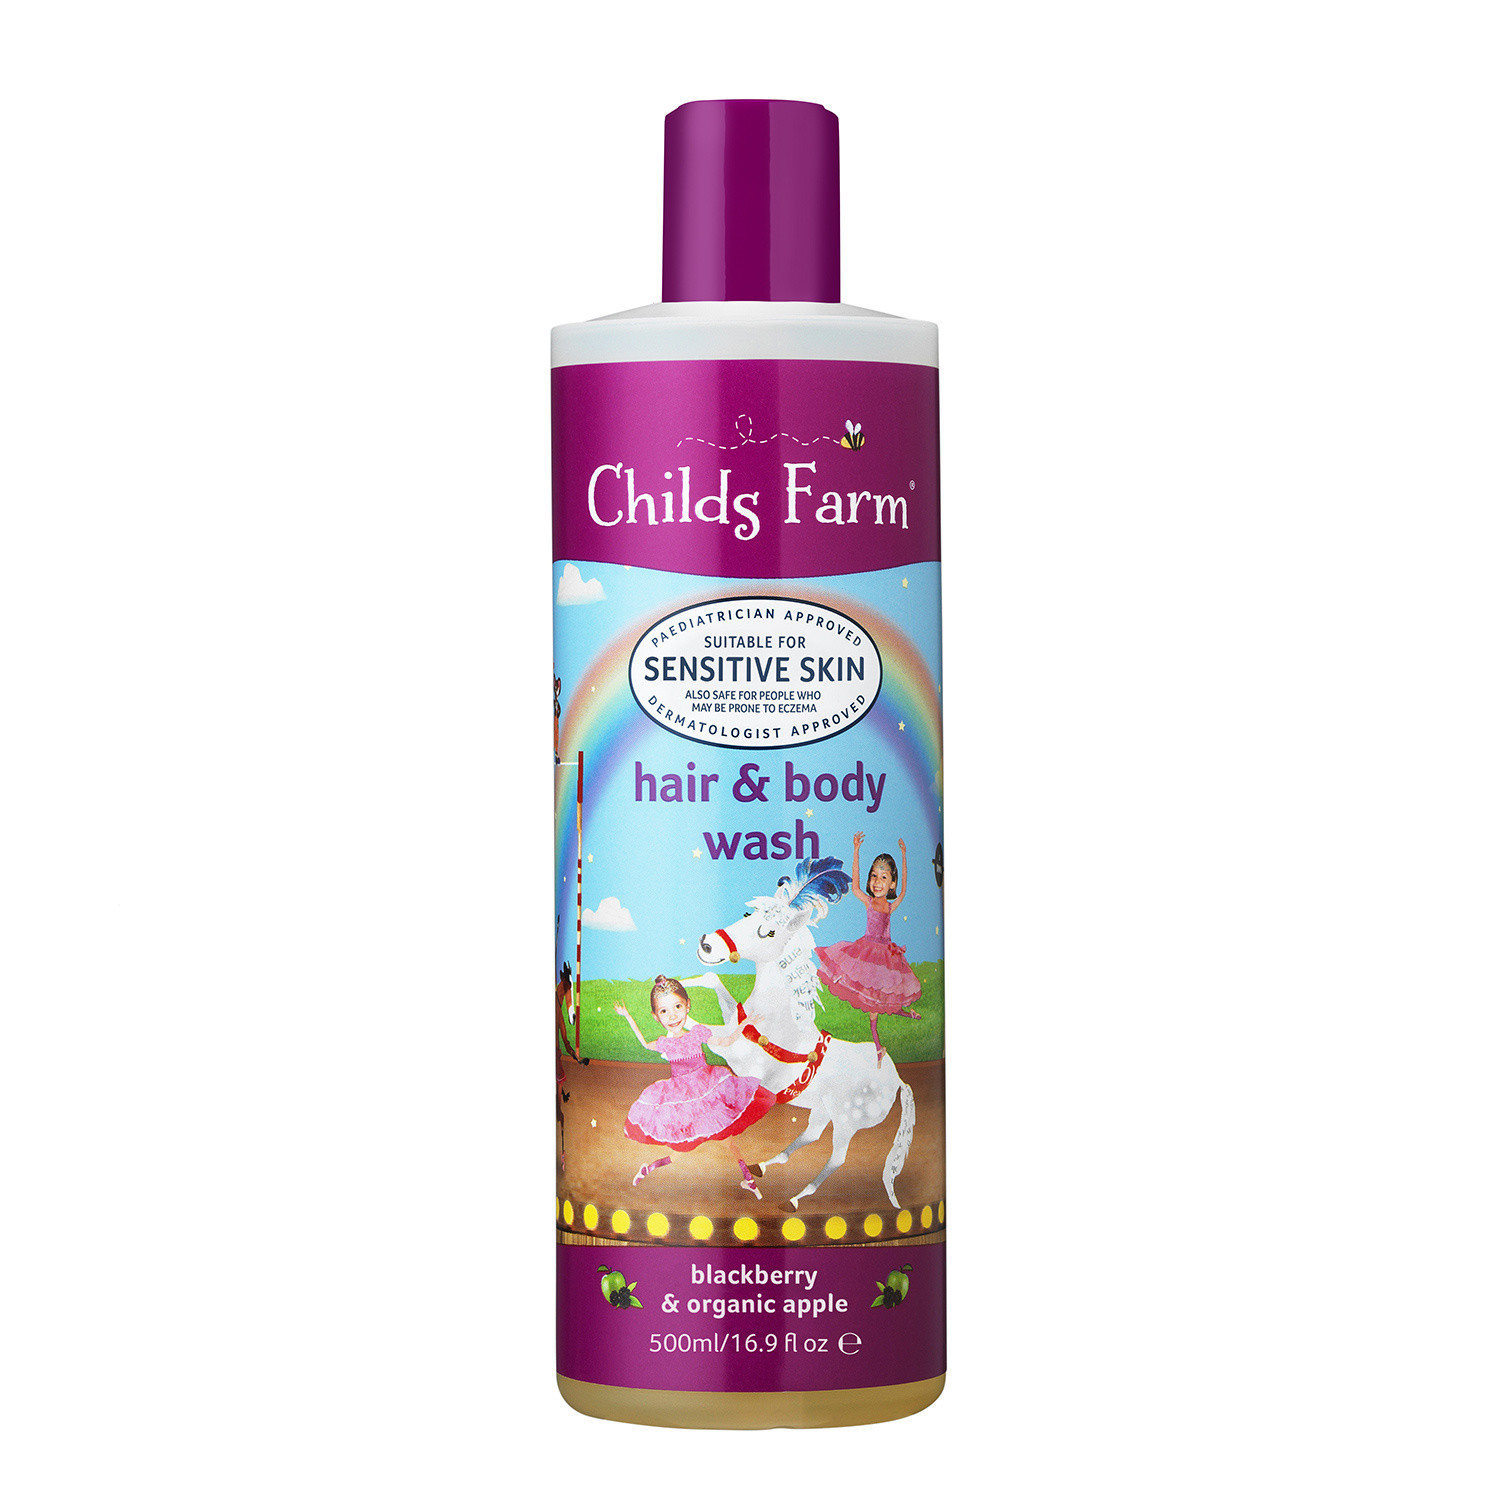 Childs Farm Blackberry & Organic Apple Extract Hair and Body Wash